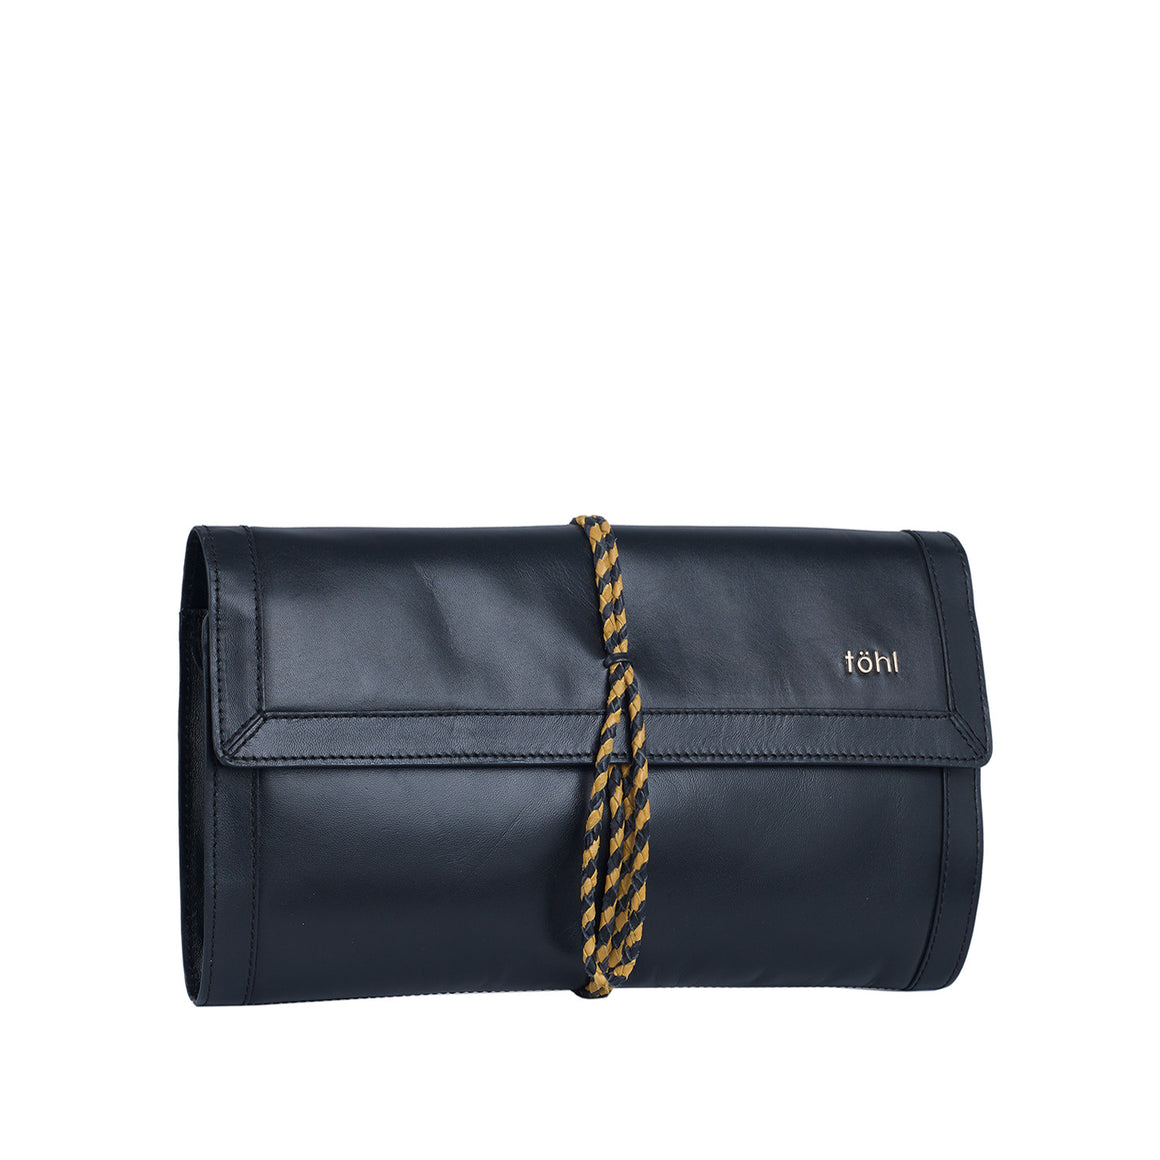 CH 0006 - TOHL CAMILLE WOMEN'S ROLLUP CLUTCH - CHARCOAL BLACK